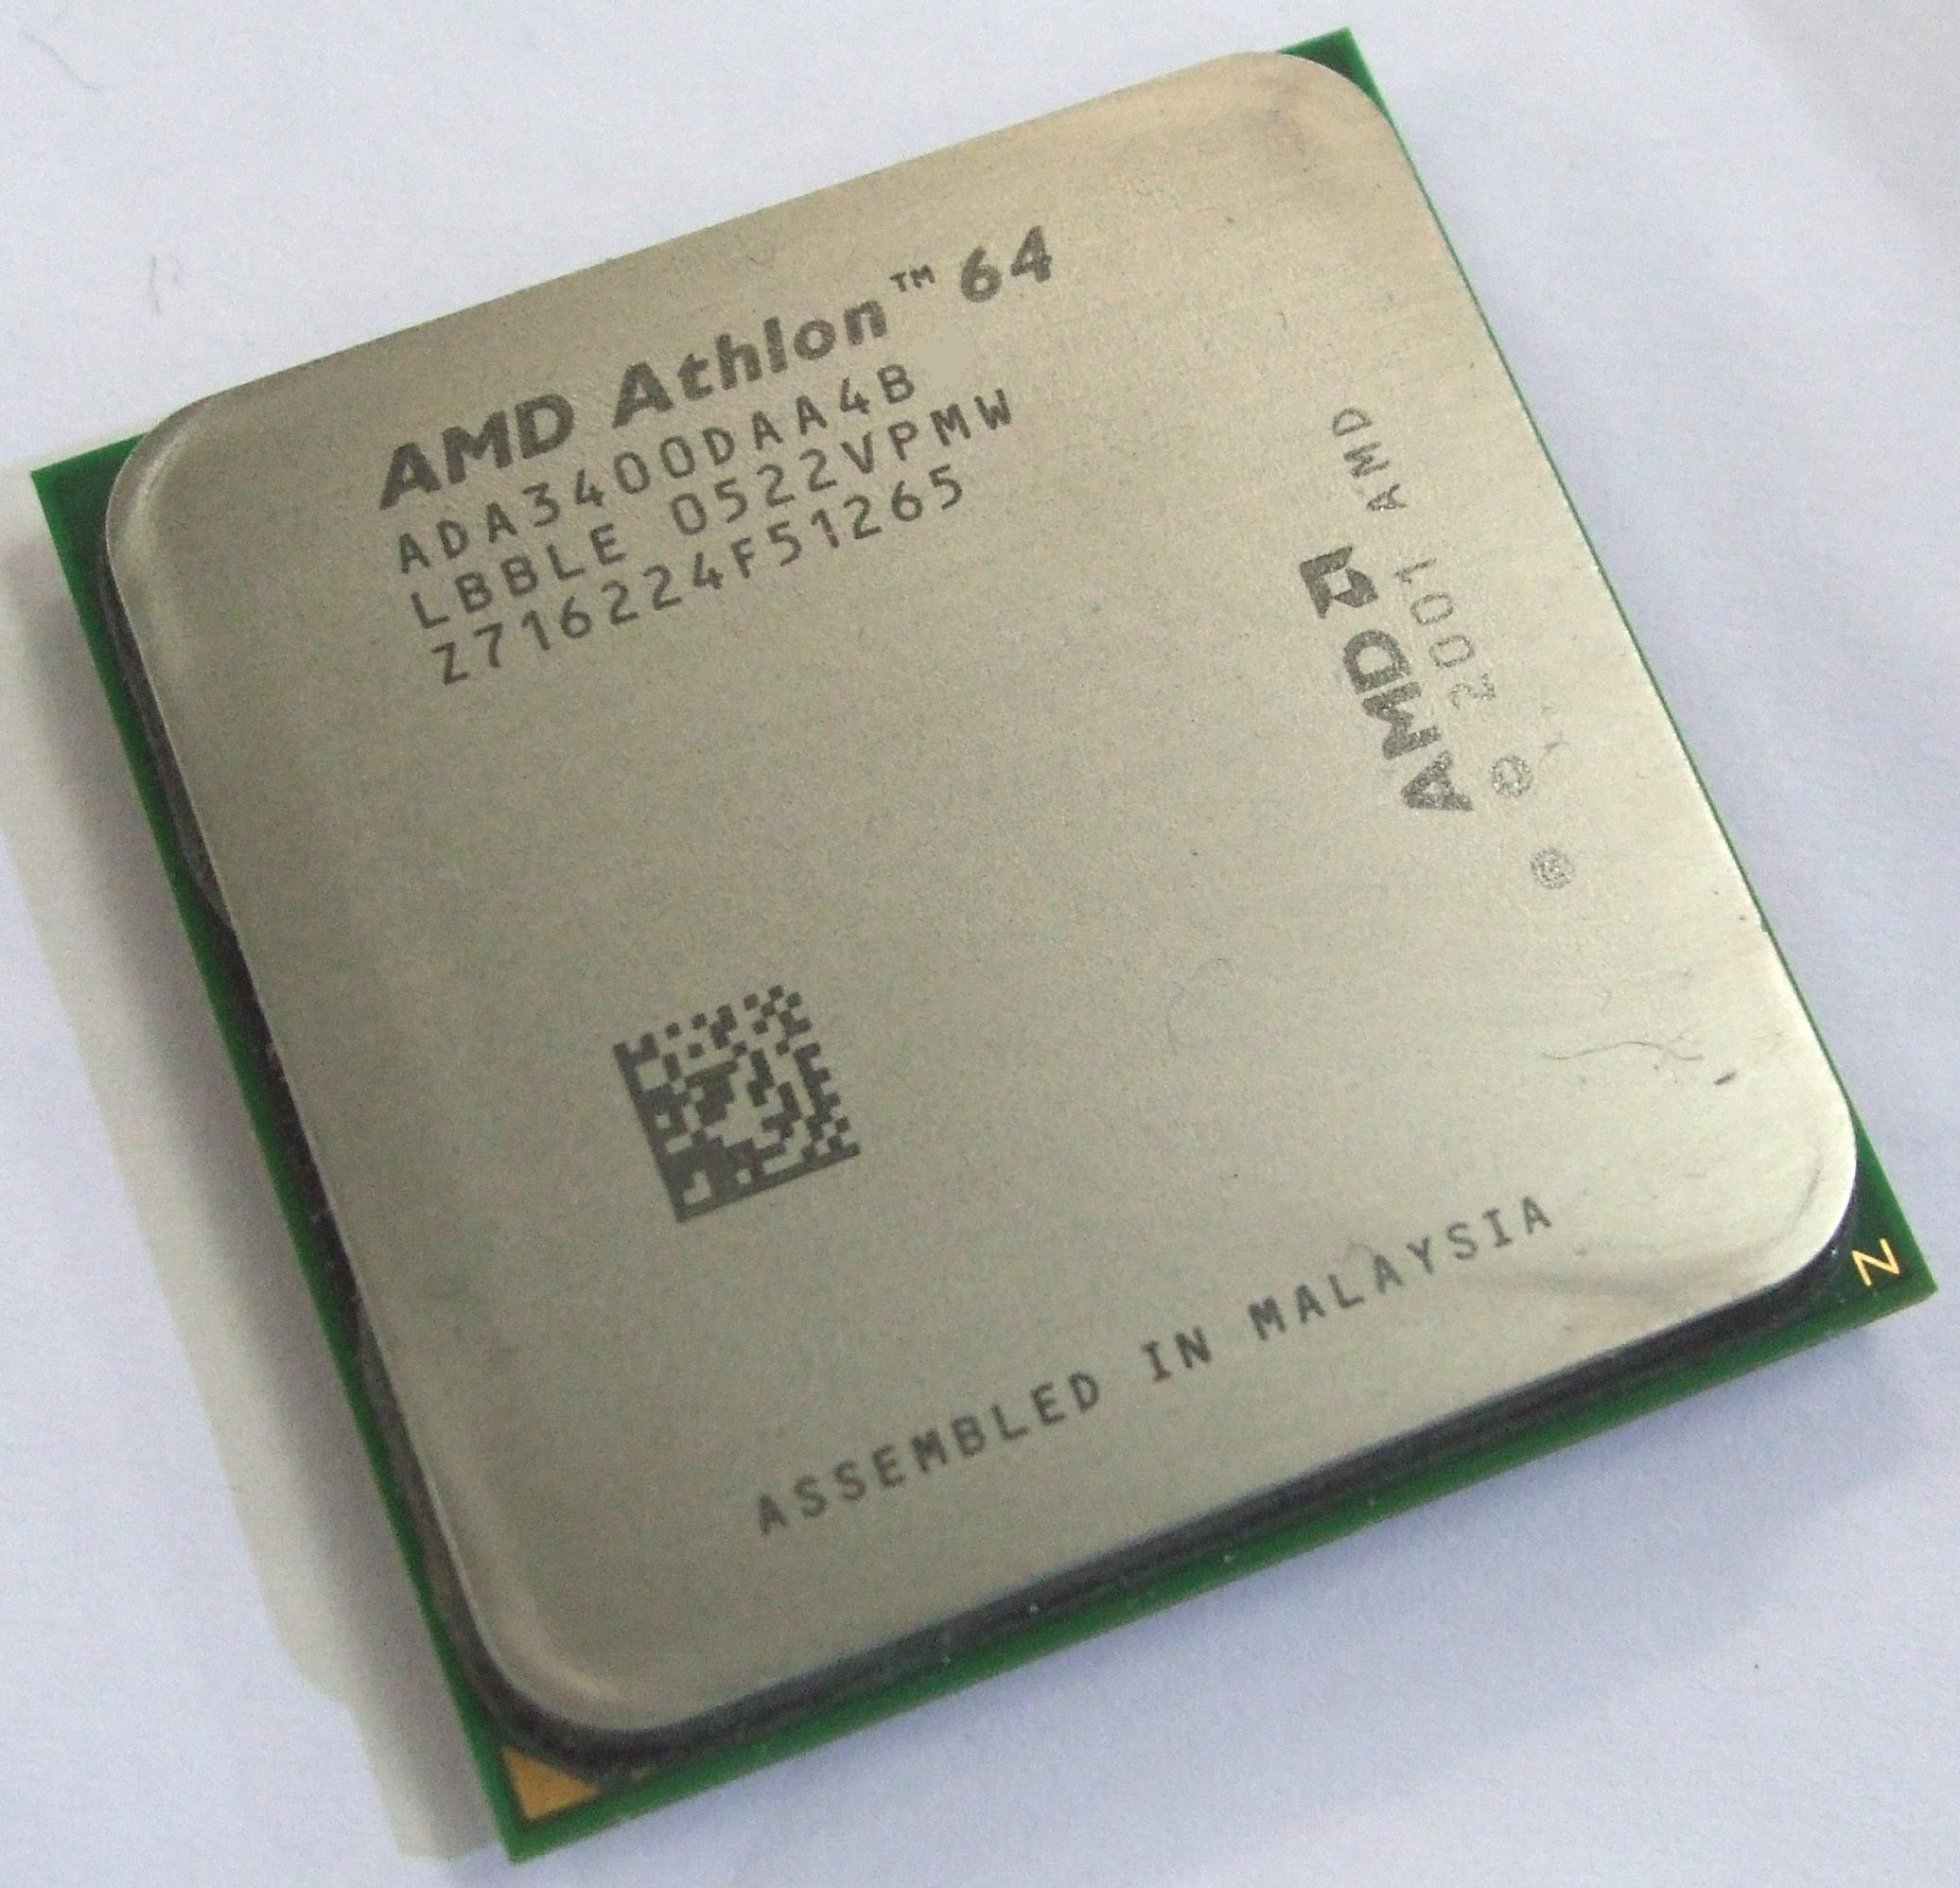 ADA3400DAA4BY AMD Athlon 64 3400 Socket 939 CPU